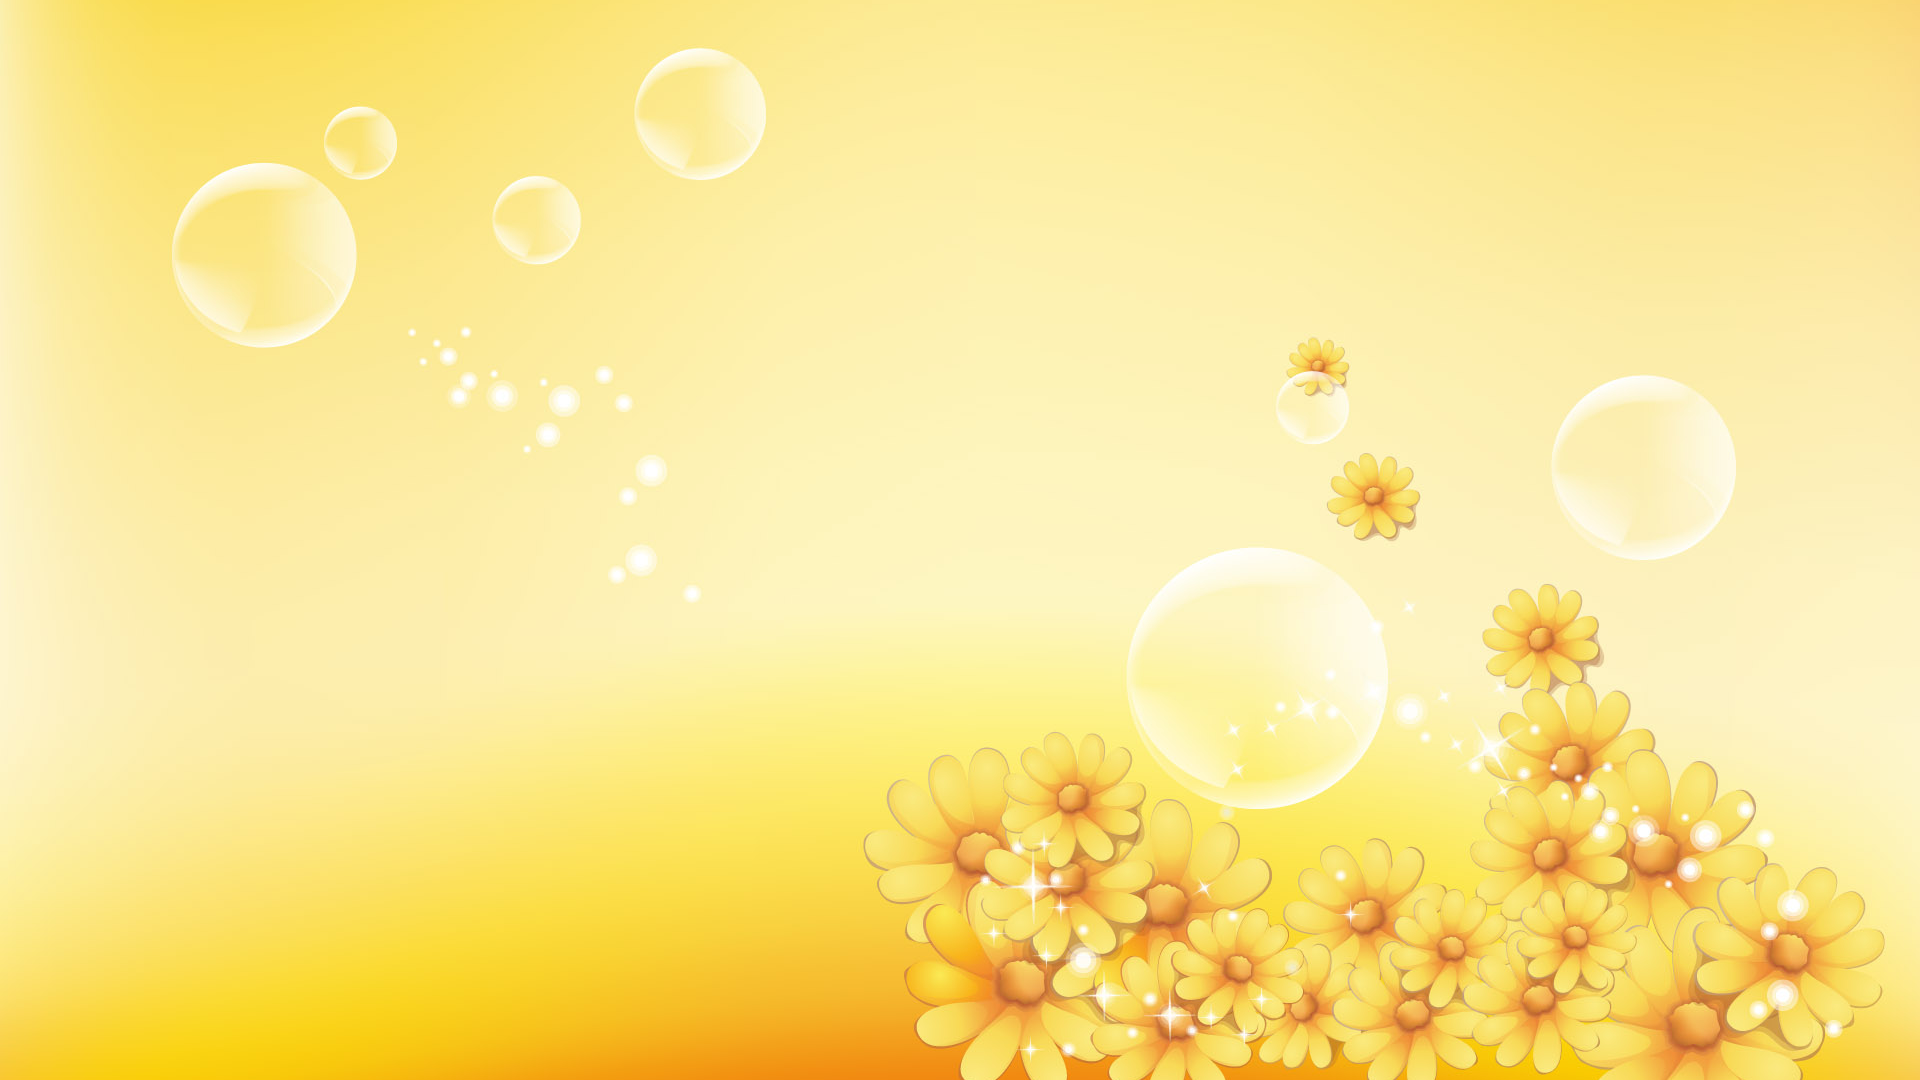 Free Download Yellow Floral Background Wallpaper 34907 1920x1200